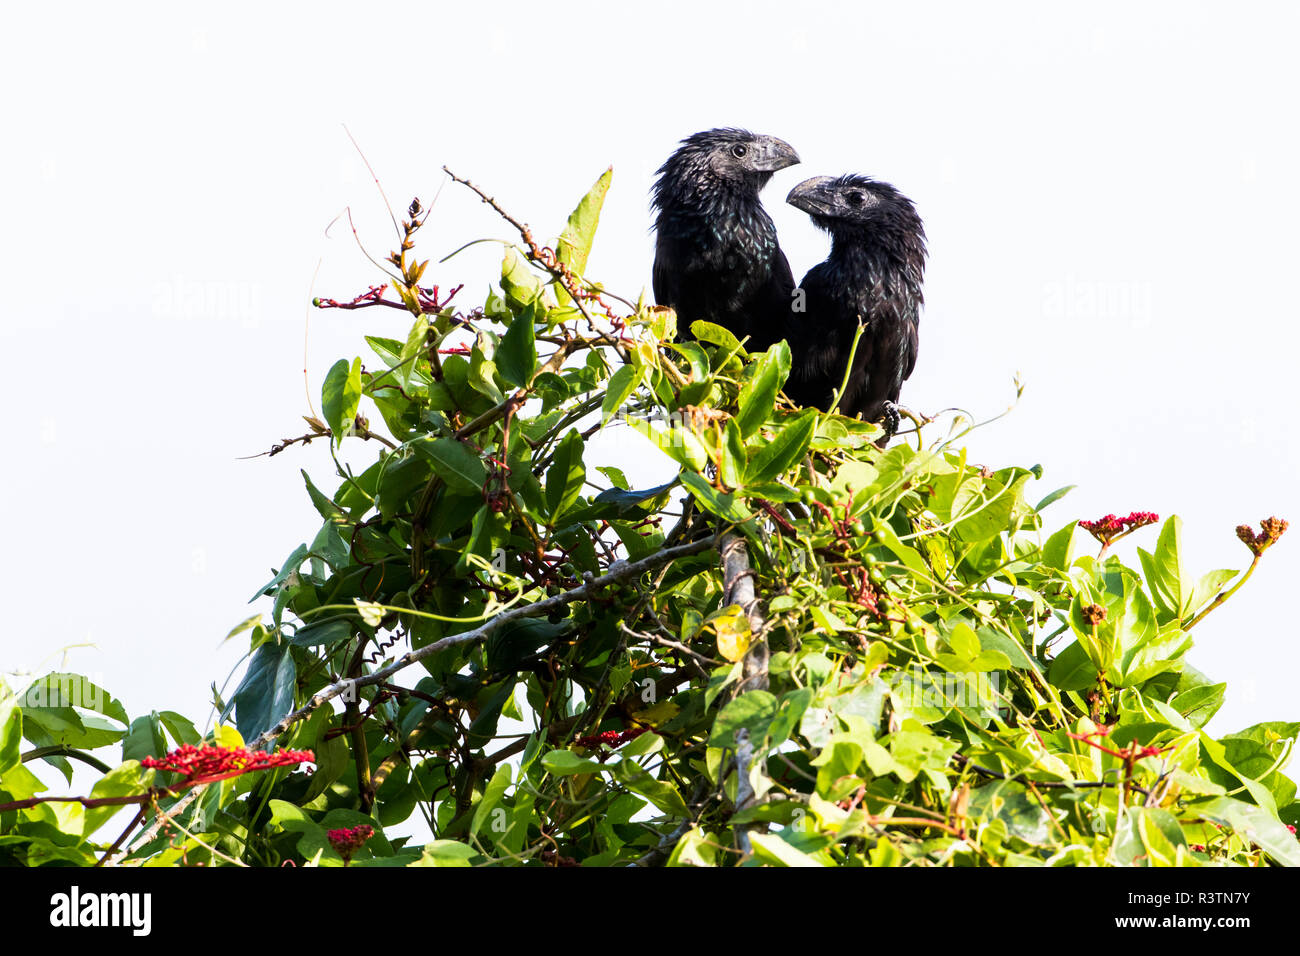 Belize, Crooked Tree Wildlife Sanctuary. Groove-billed Anis perch on top of shrubbery - Stock Image